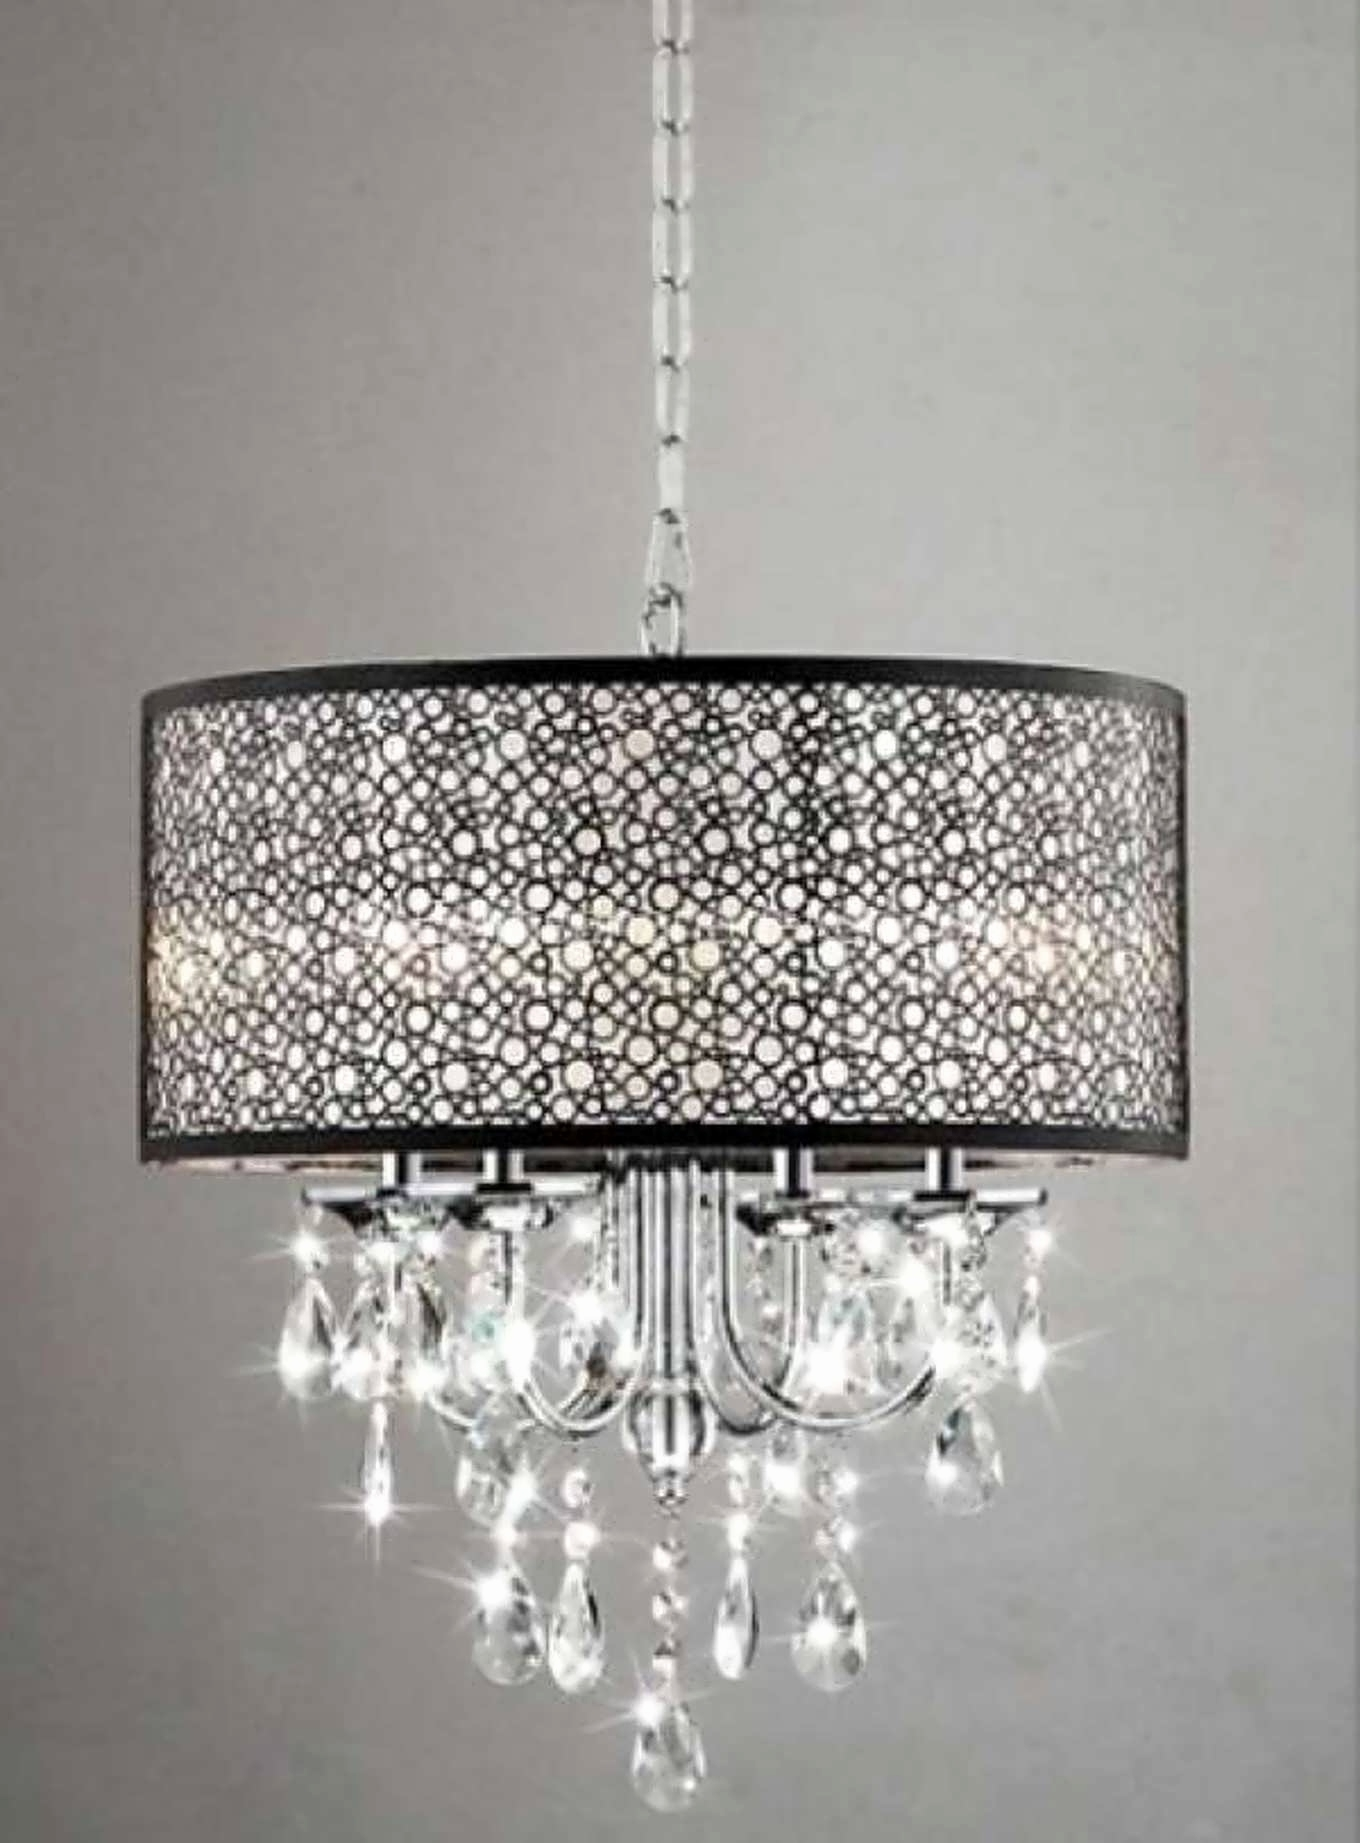 Famous 12 Light Chandelier Costco – Chandelier Designs With Costco Lighting Chandeliers (View 18 of 20)